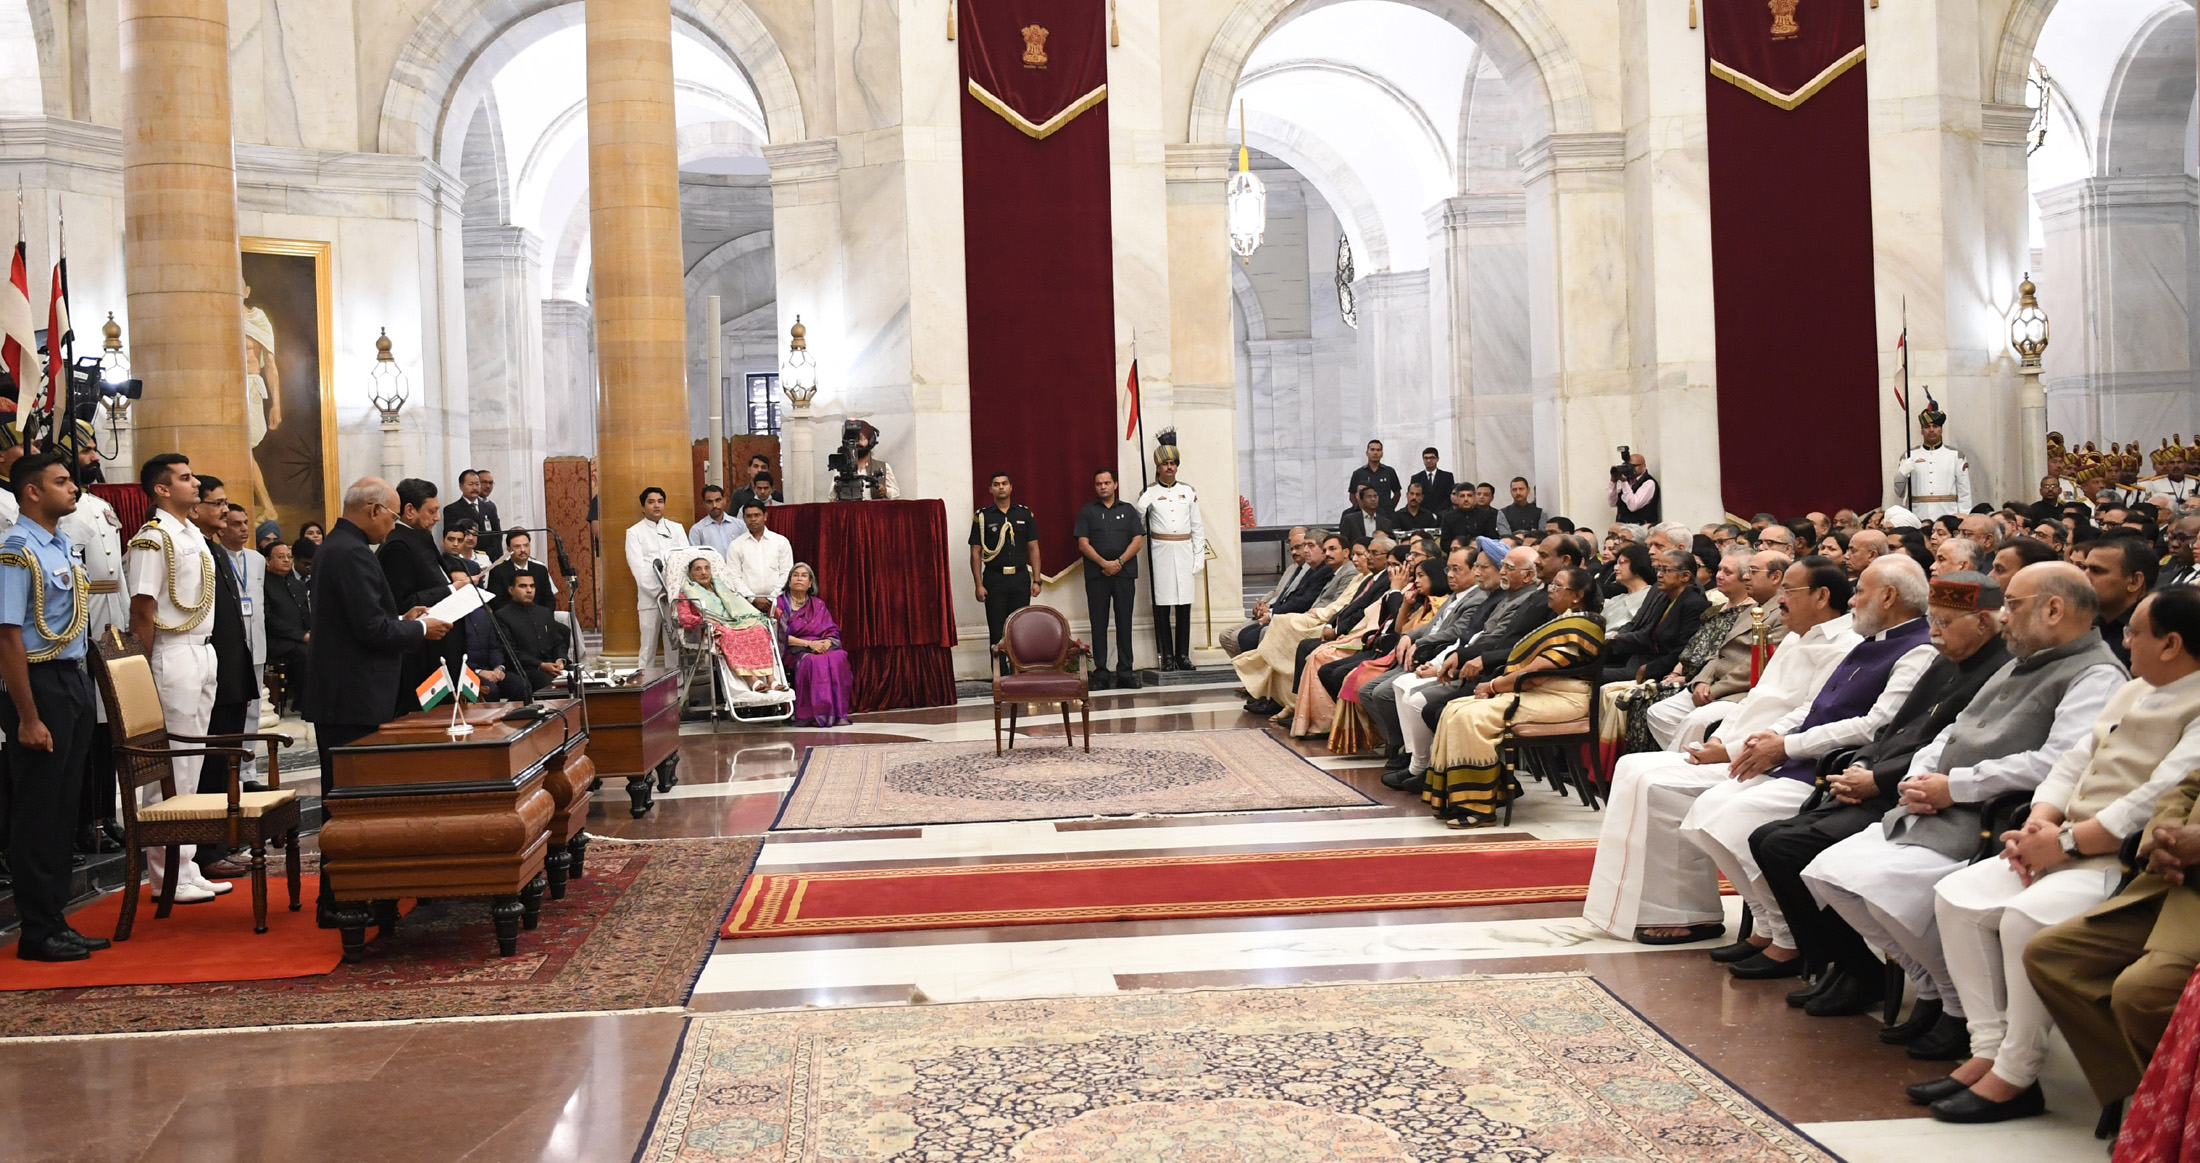 The Prime Minister, Shri Narendra Modi attending the Swearing-in-Ceremony of Justice Sharad Arvind Bobde as the Chief Justice of India, at Rashtrapati Bhavan, in New Delhi on November 18, 2019.